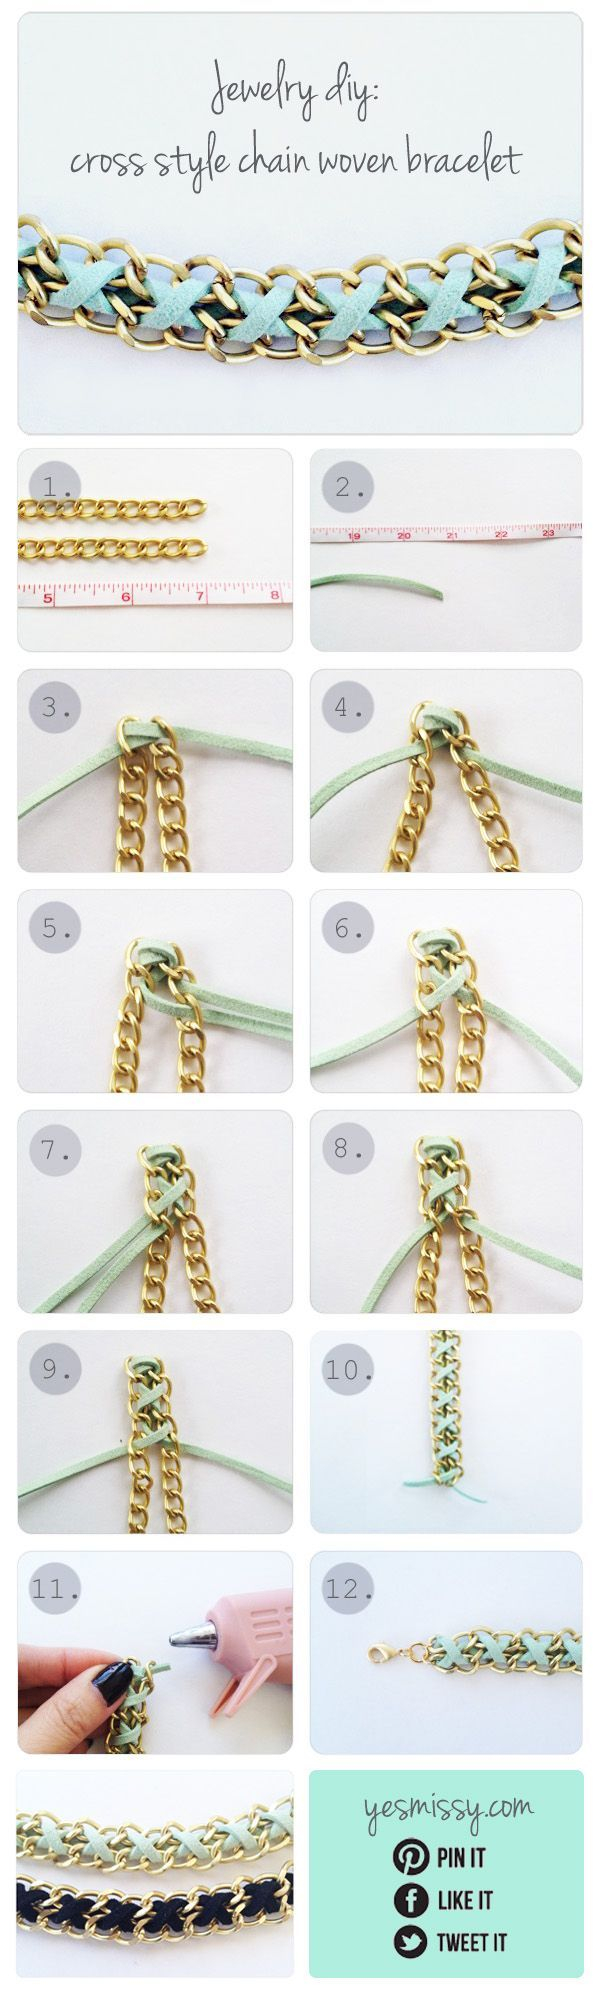 Cross Style Chain Woven Bracelet Pictures, Photos, and Images for Facebook, Tumblr, Pinterest, and Twitter